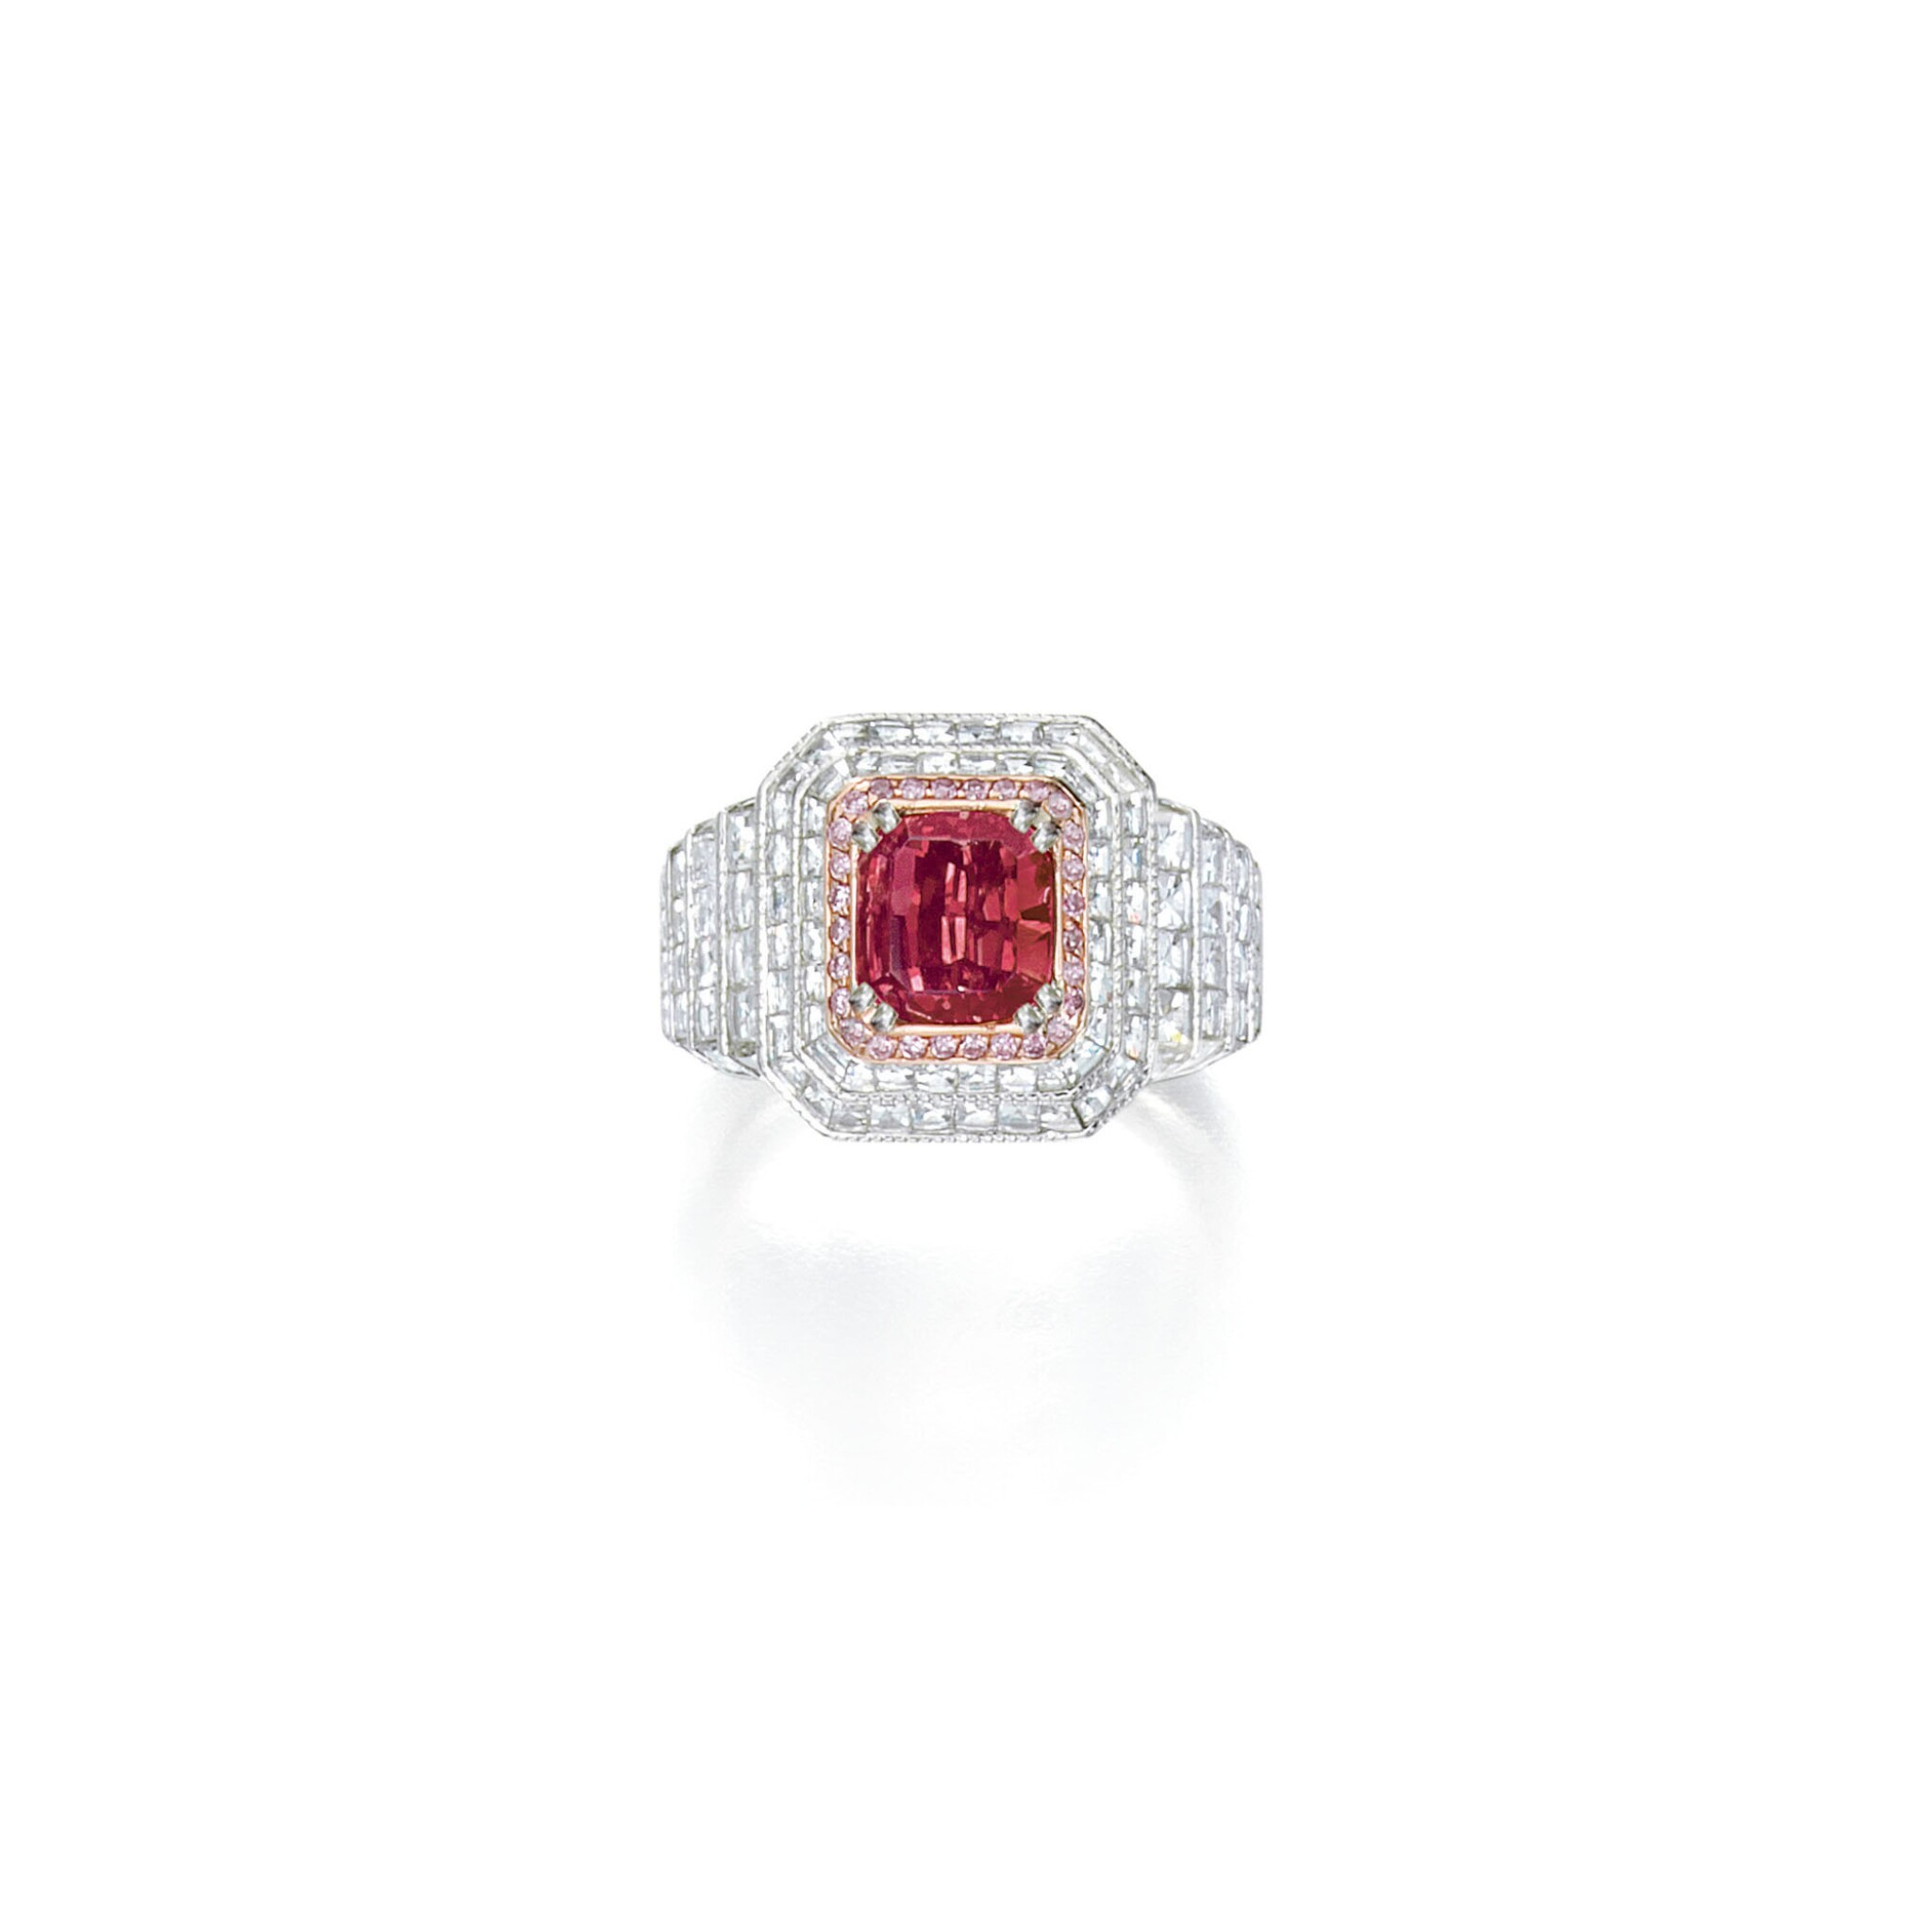 View full screen - View 1 of Lot 427. A RARE FANCY RED DIAMOND AND DIAMOND RING | 彩紅色鑽石配鑽石戒指一枚.